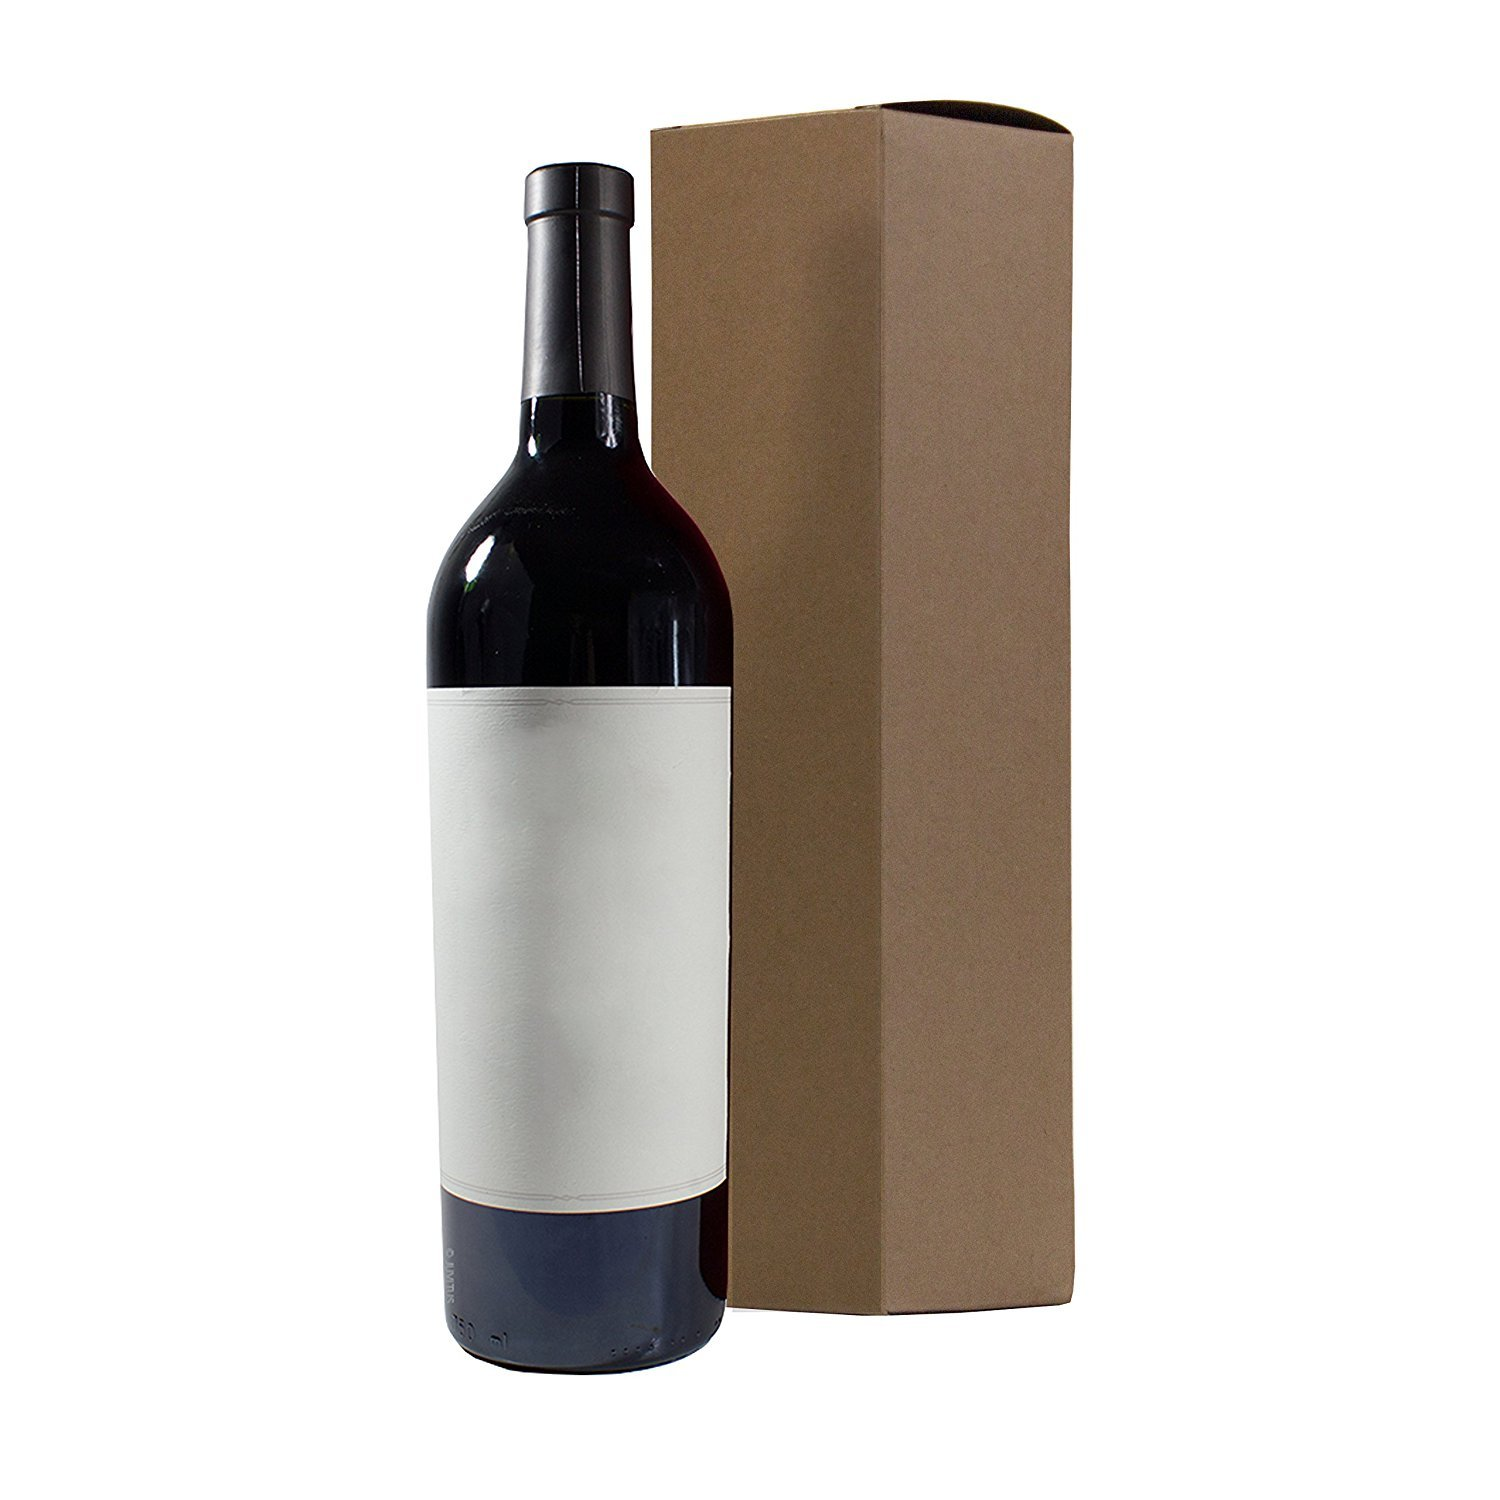 Wine and Liquor Natural Kraft Gift Box - 6 pack - 13.5'' tall for standard size wine bottle + Labels